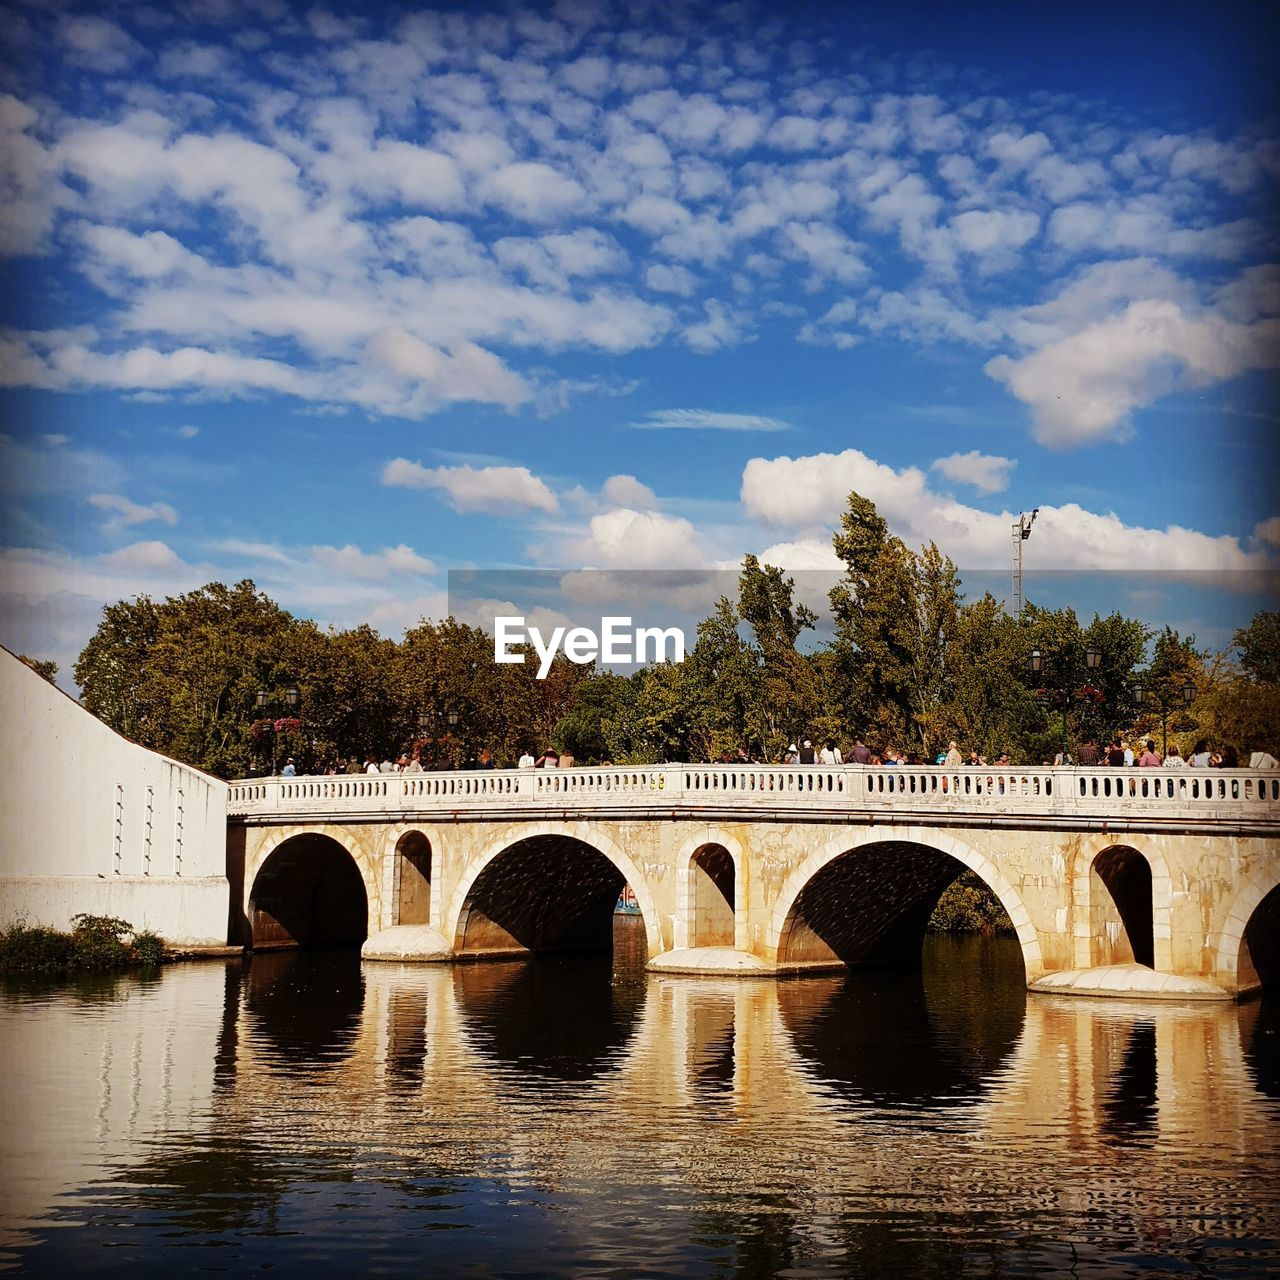 bridge, connection, water, architecture, cloud - sky, bridge - man made structure, built structure, sky, arch, nature, tree, reflection, waterfront, river, plant, arch bridge, transportation, no people, day, outdoors, arched